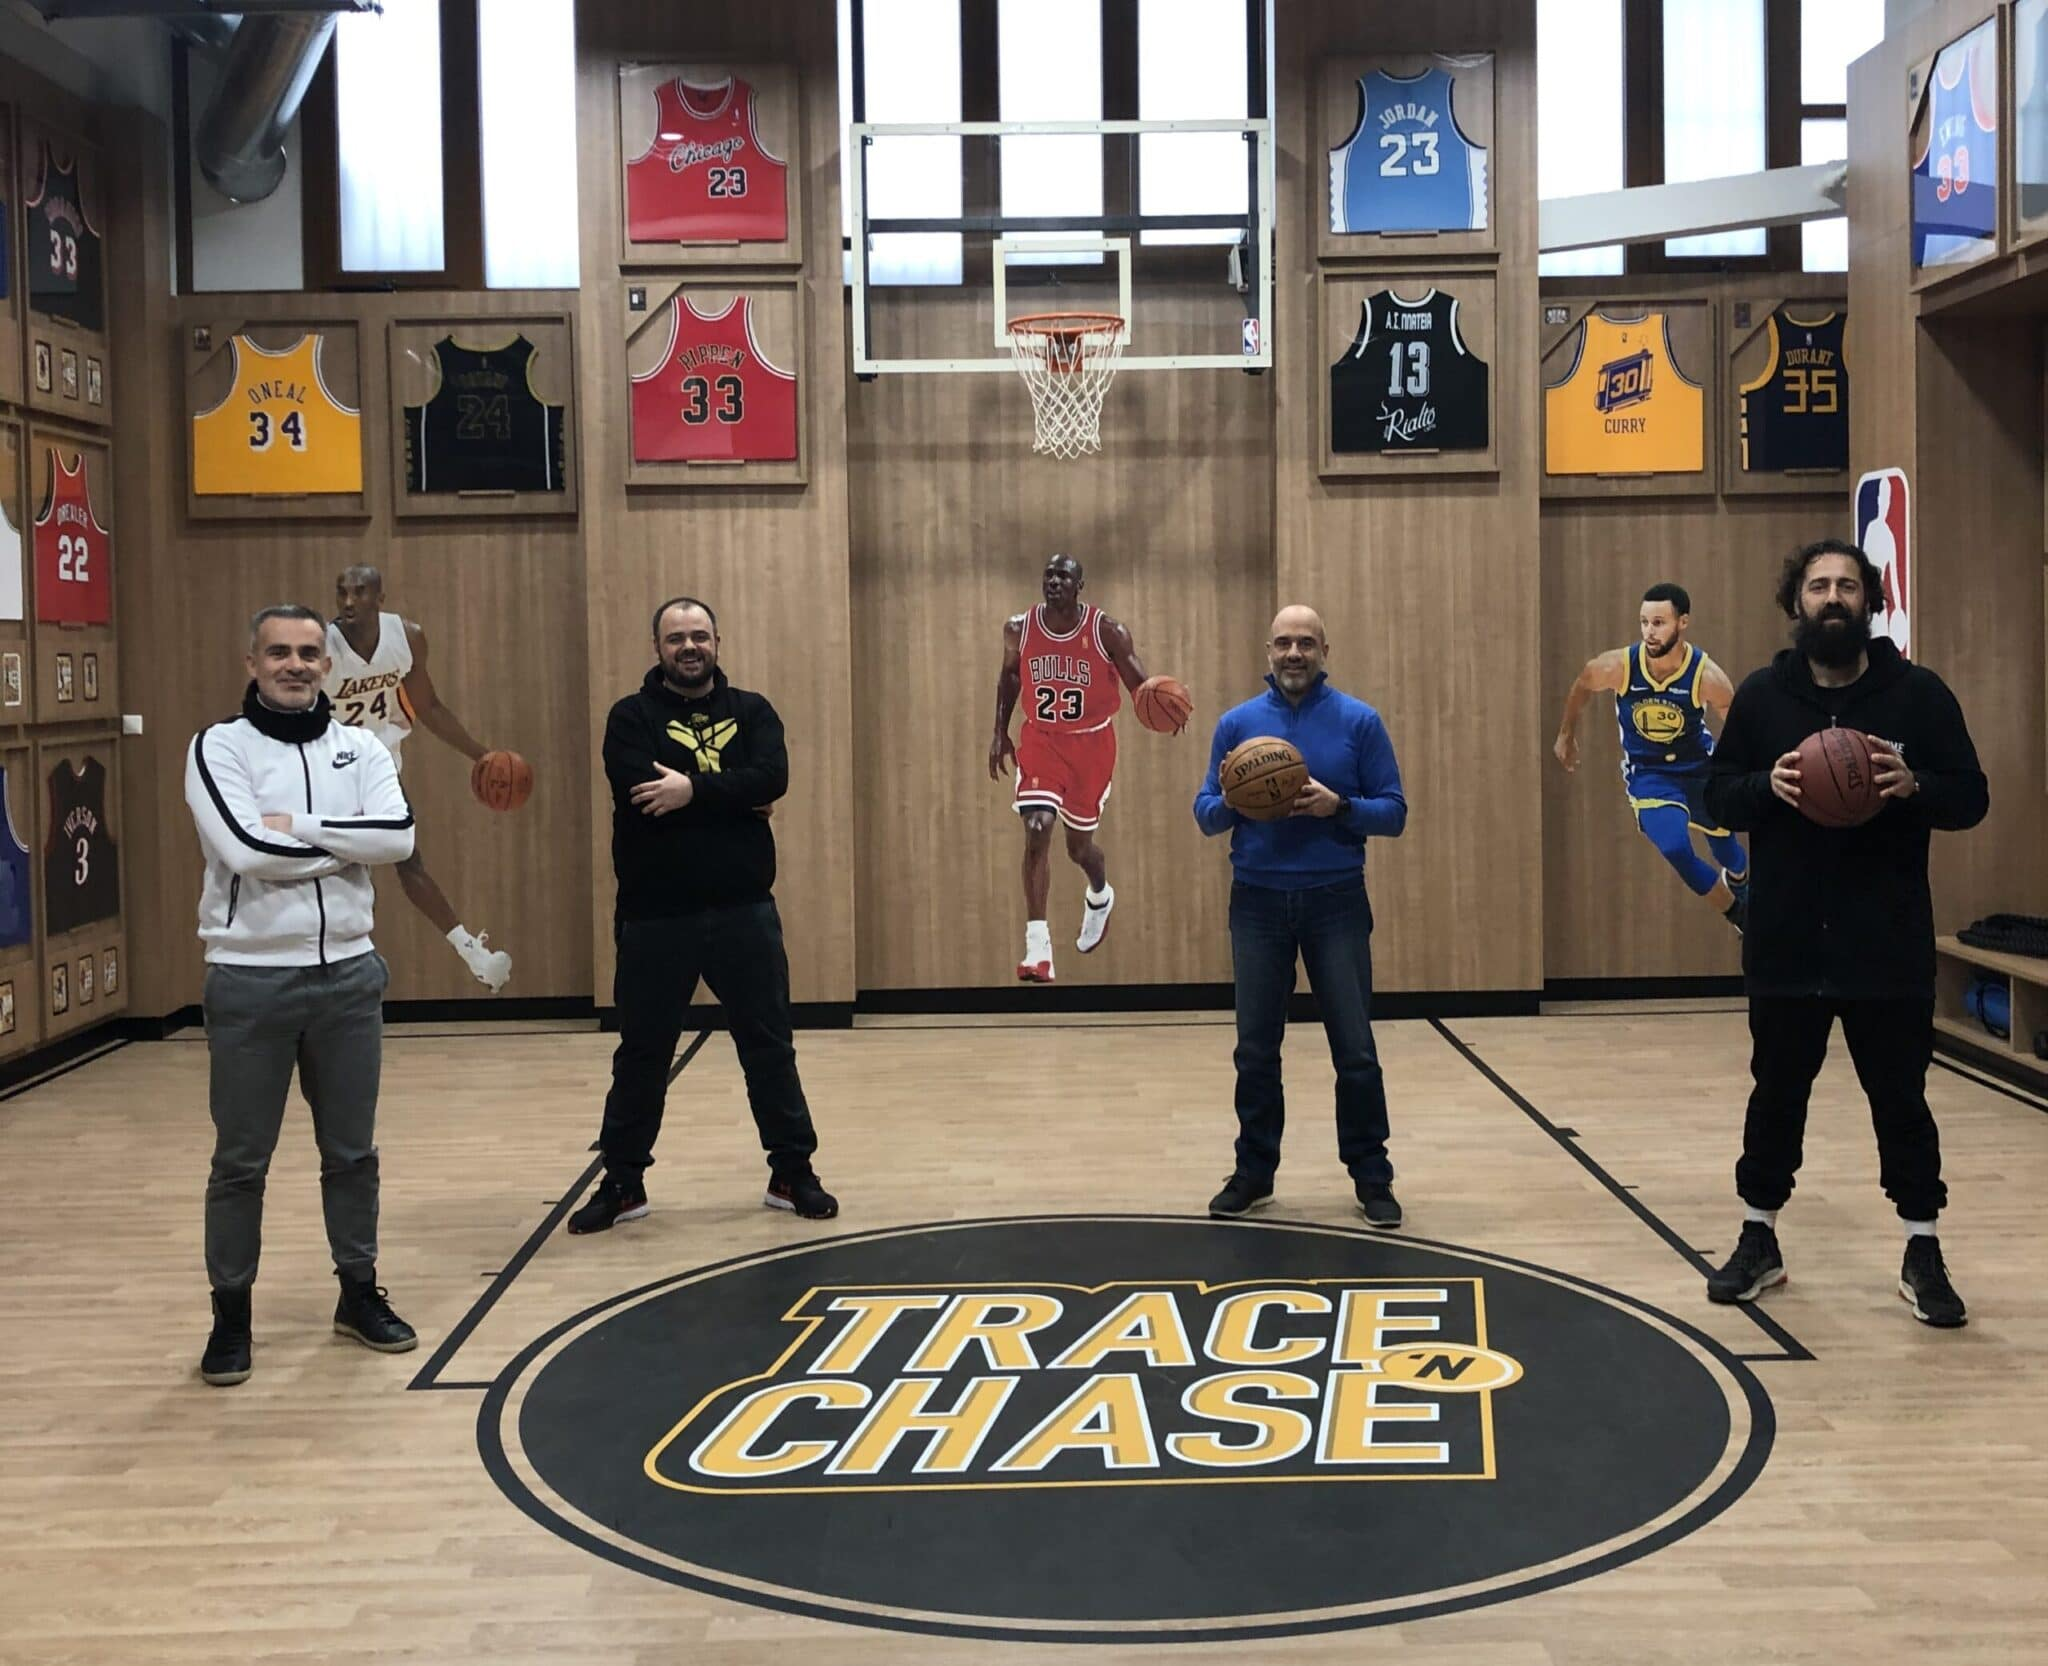 Trace 'N Chase Hobby Shop hosts Coach Aris Lykogiannis of PAOK BC